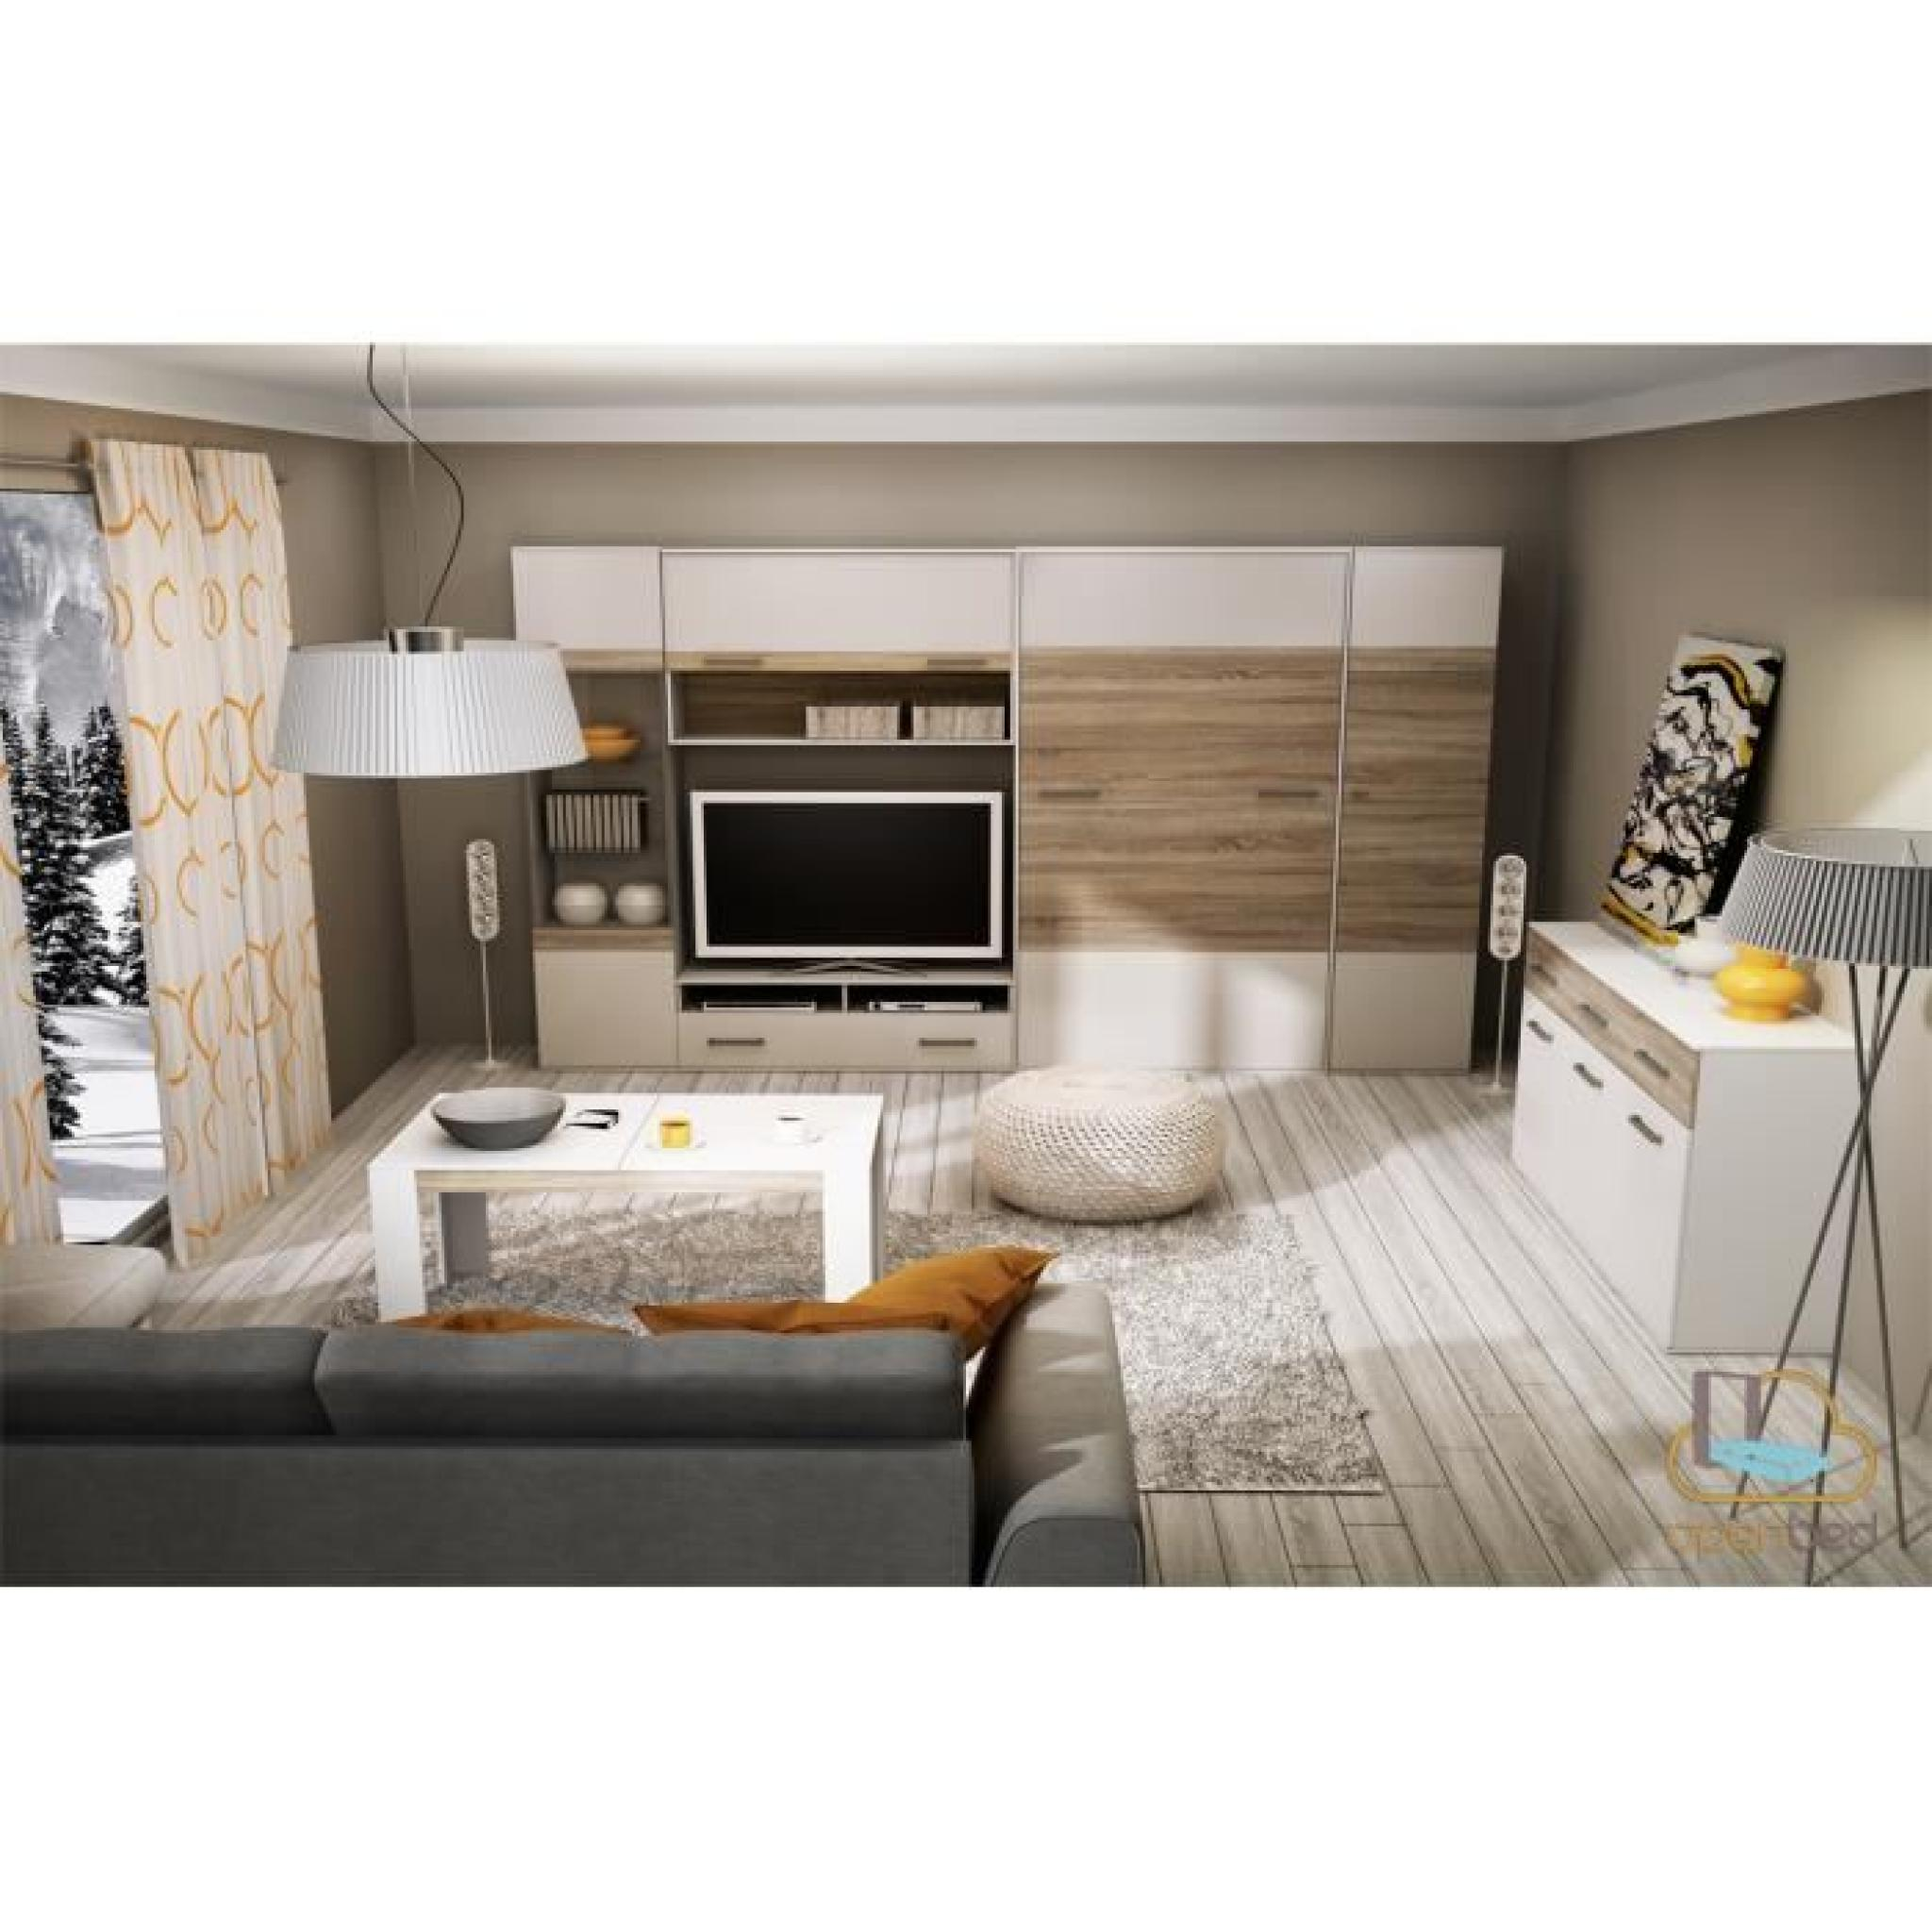 lit escamotable vertical faro 140 200 achat vente chambre complete pas cher couleur et. Black Bedroom Furniture Sets. Home Design Ideas